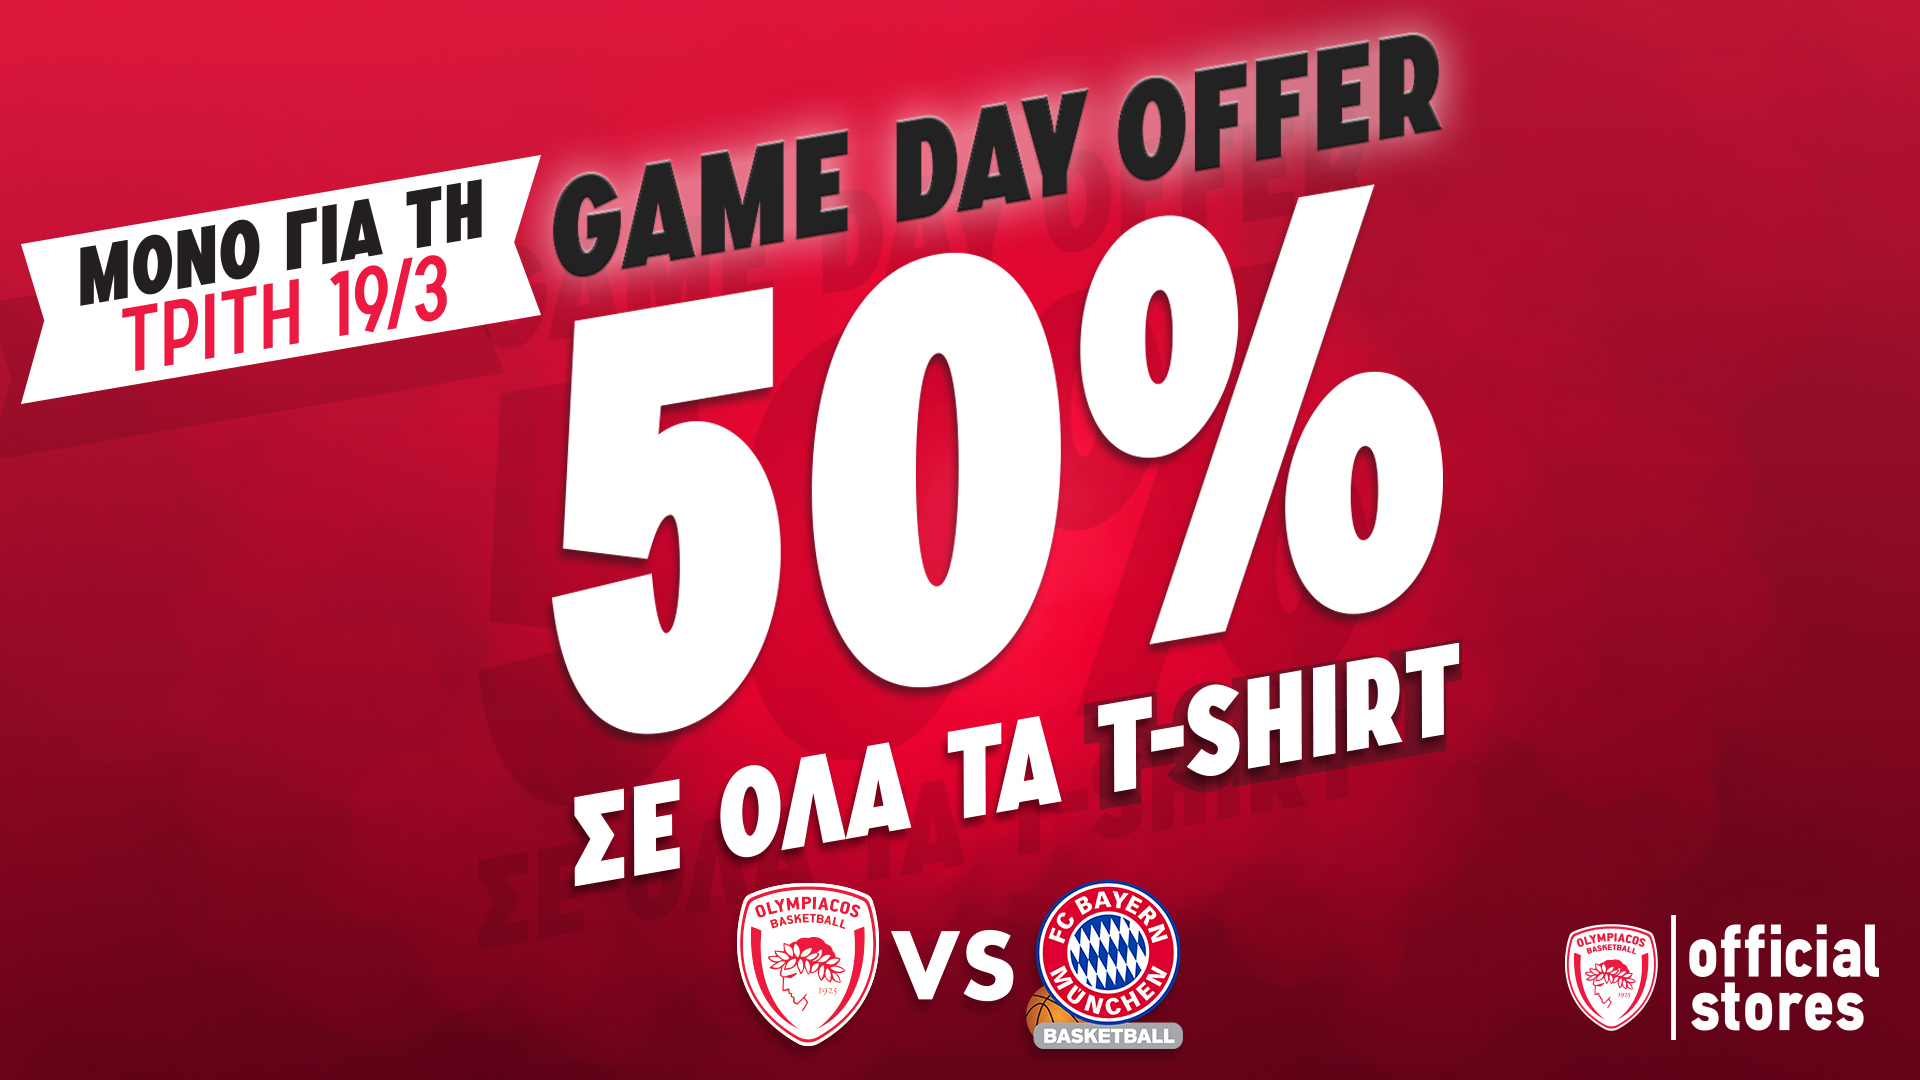 65a1593cec Official Olympiacos BC Store  Game Day T-Shirt Offer 50%